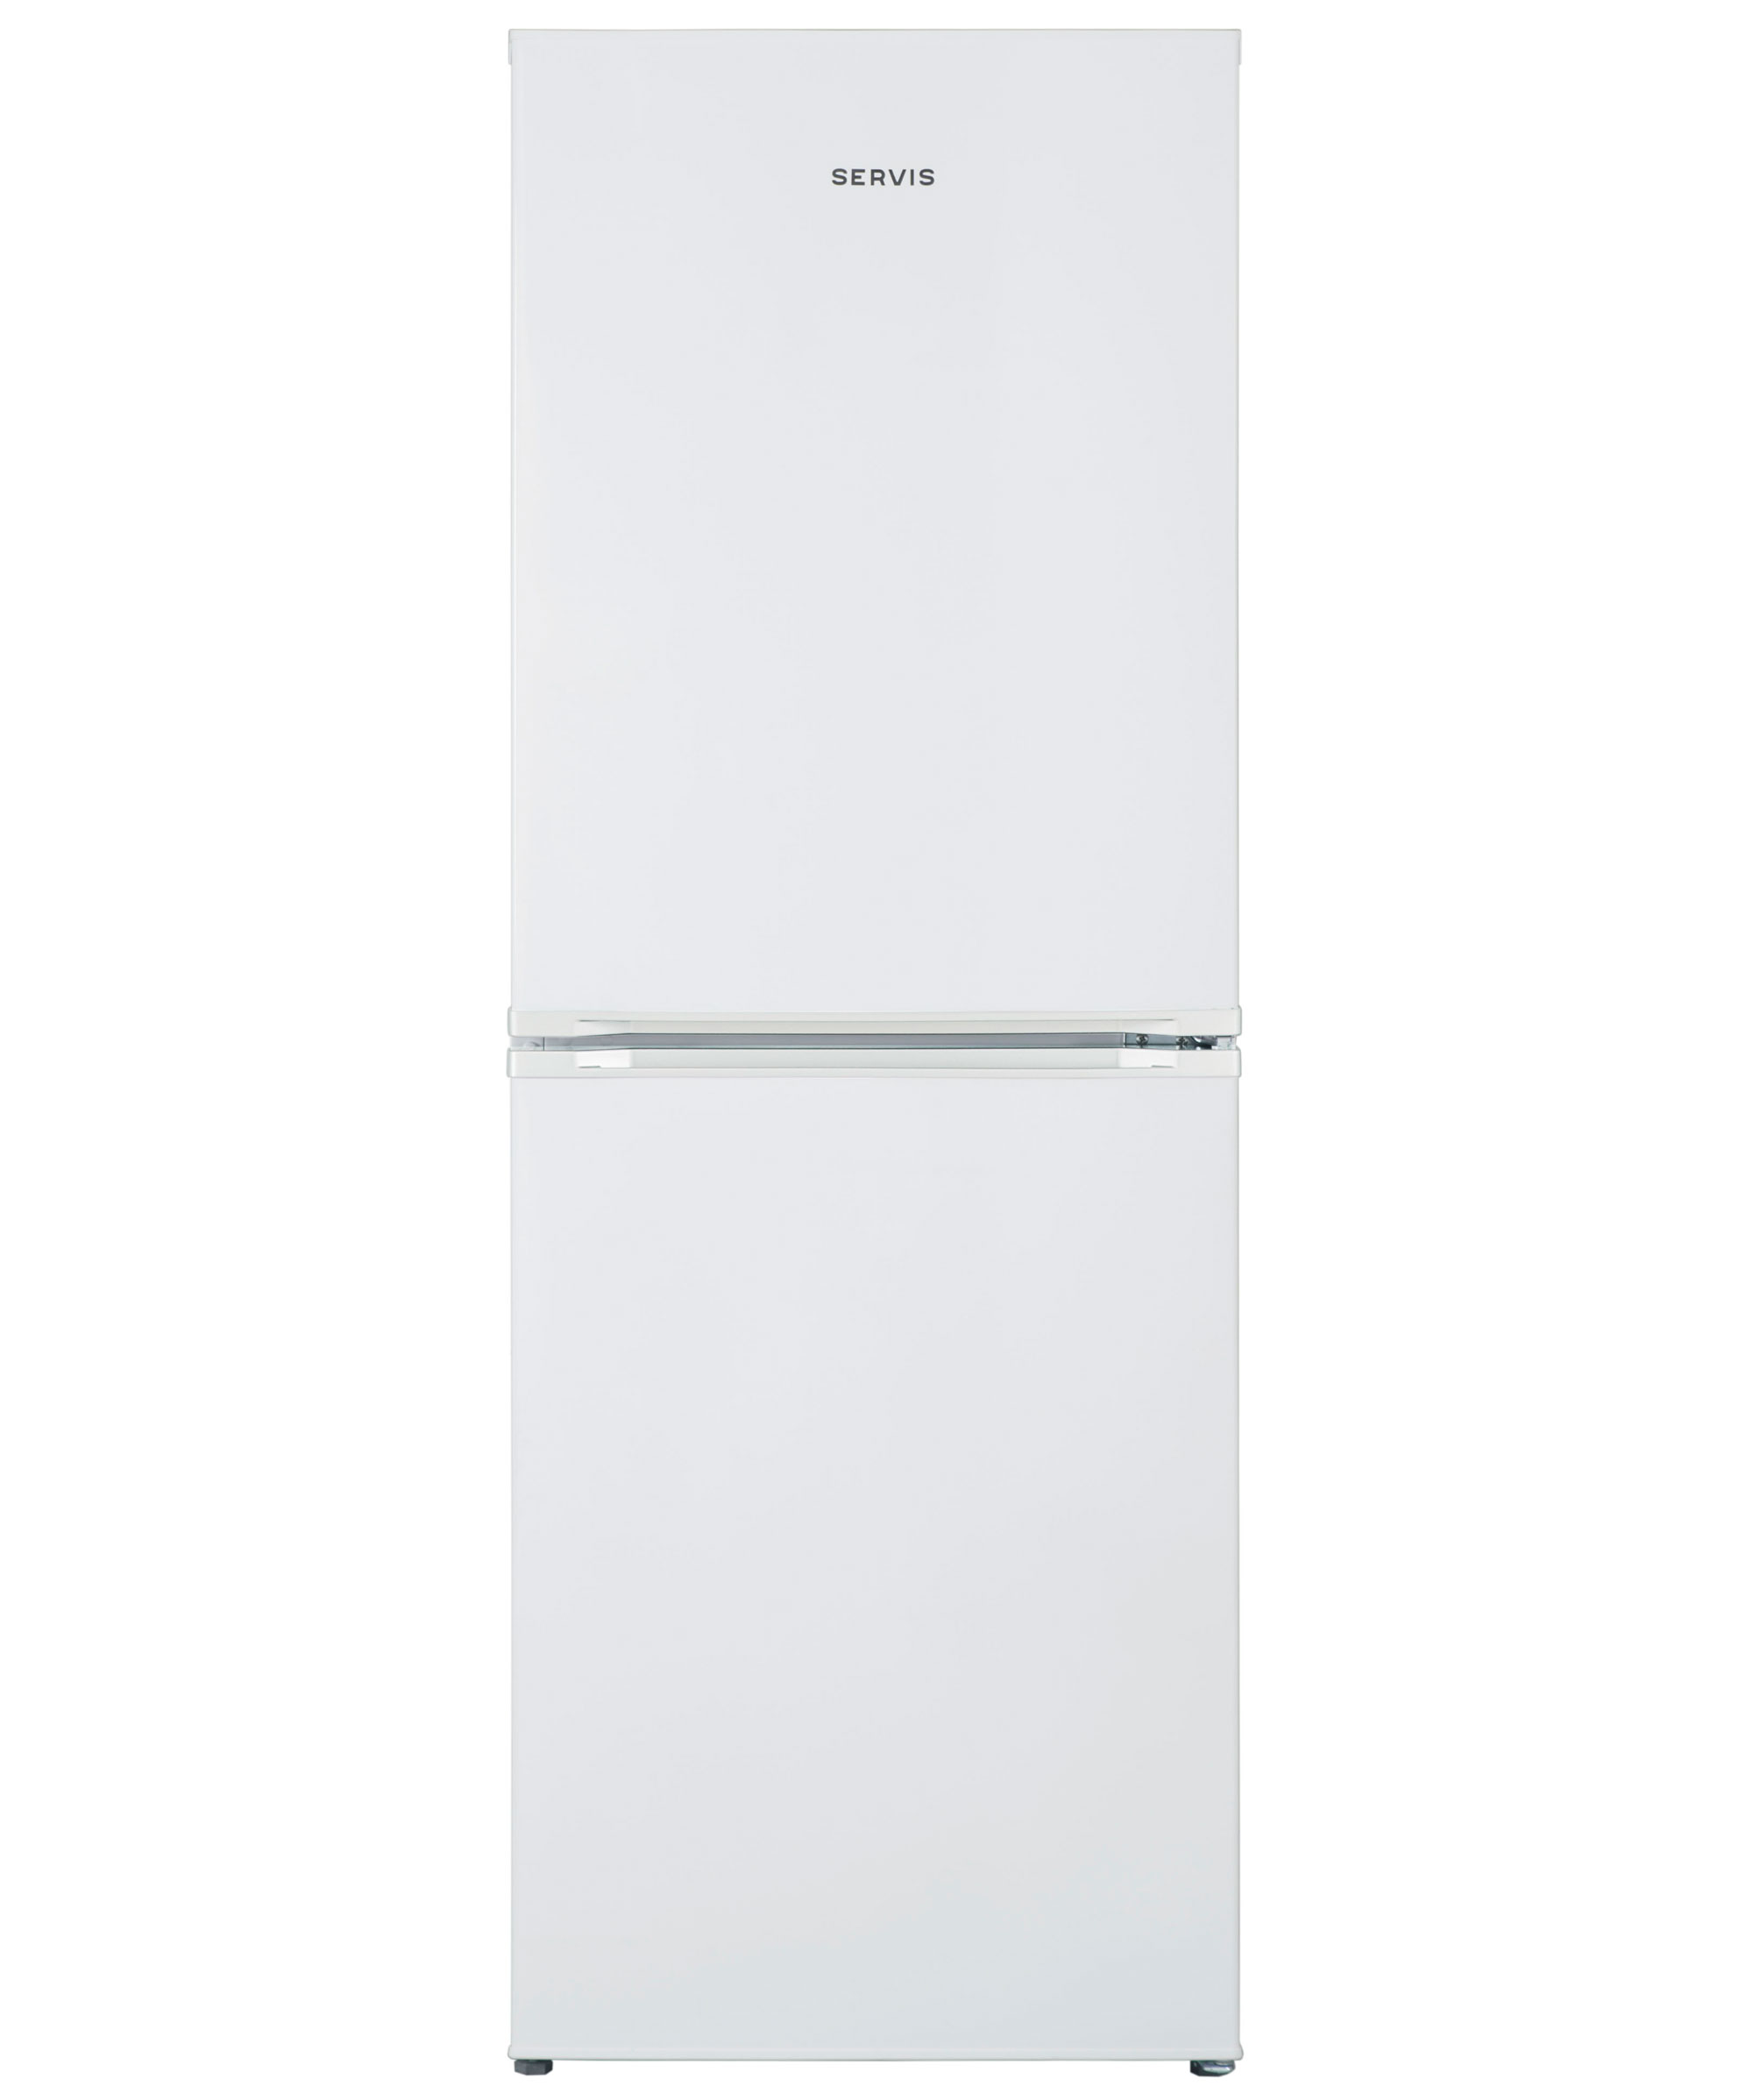 FF54152 - Fridge Freezer